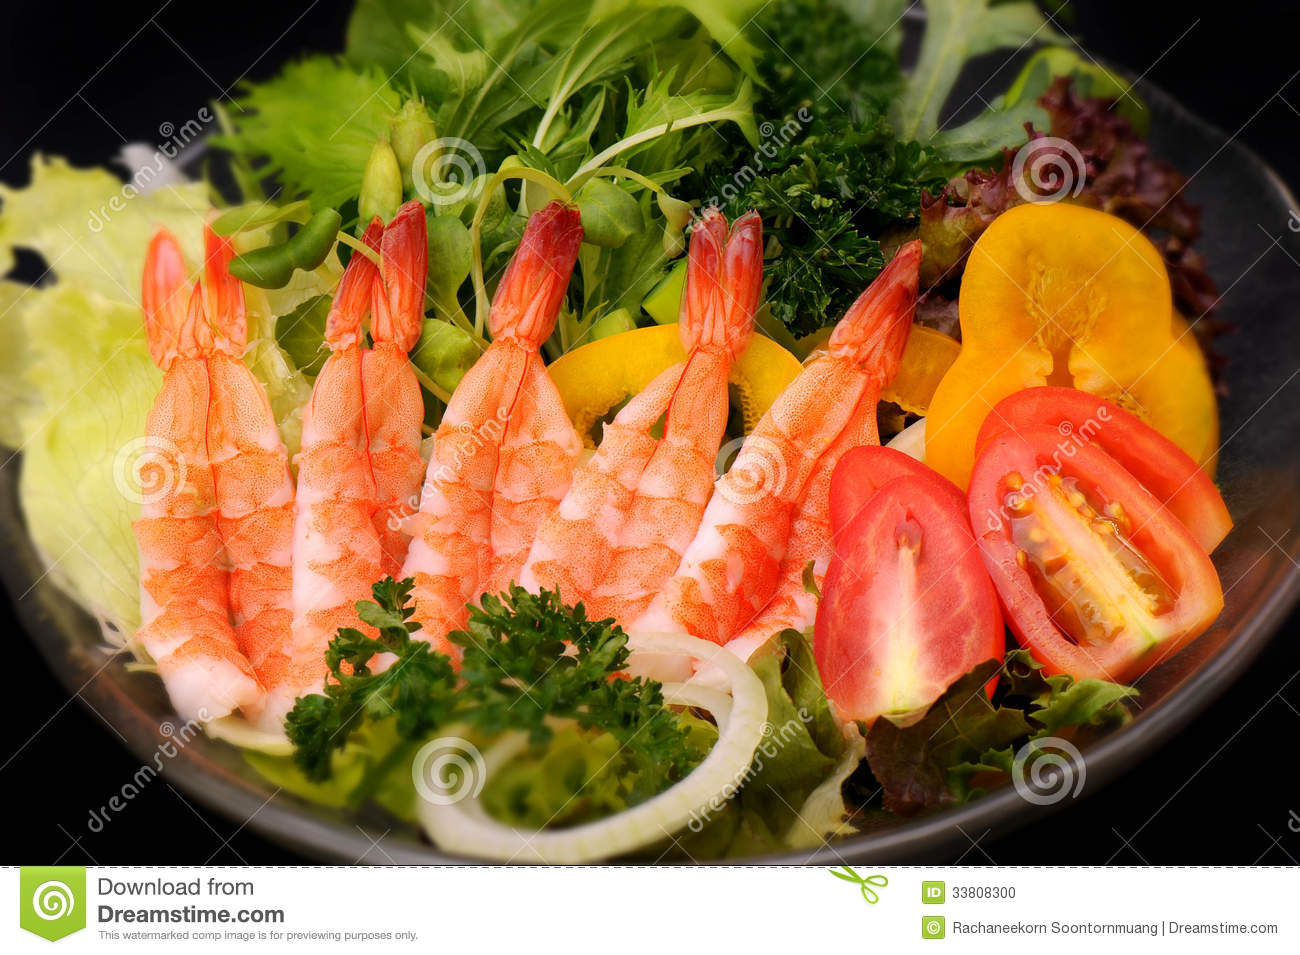 Close up shrimp and mix vegetables for salad, Japanese cuisine.